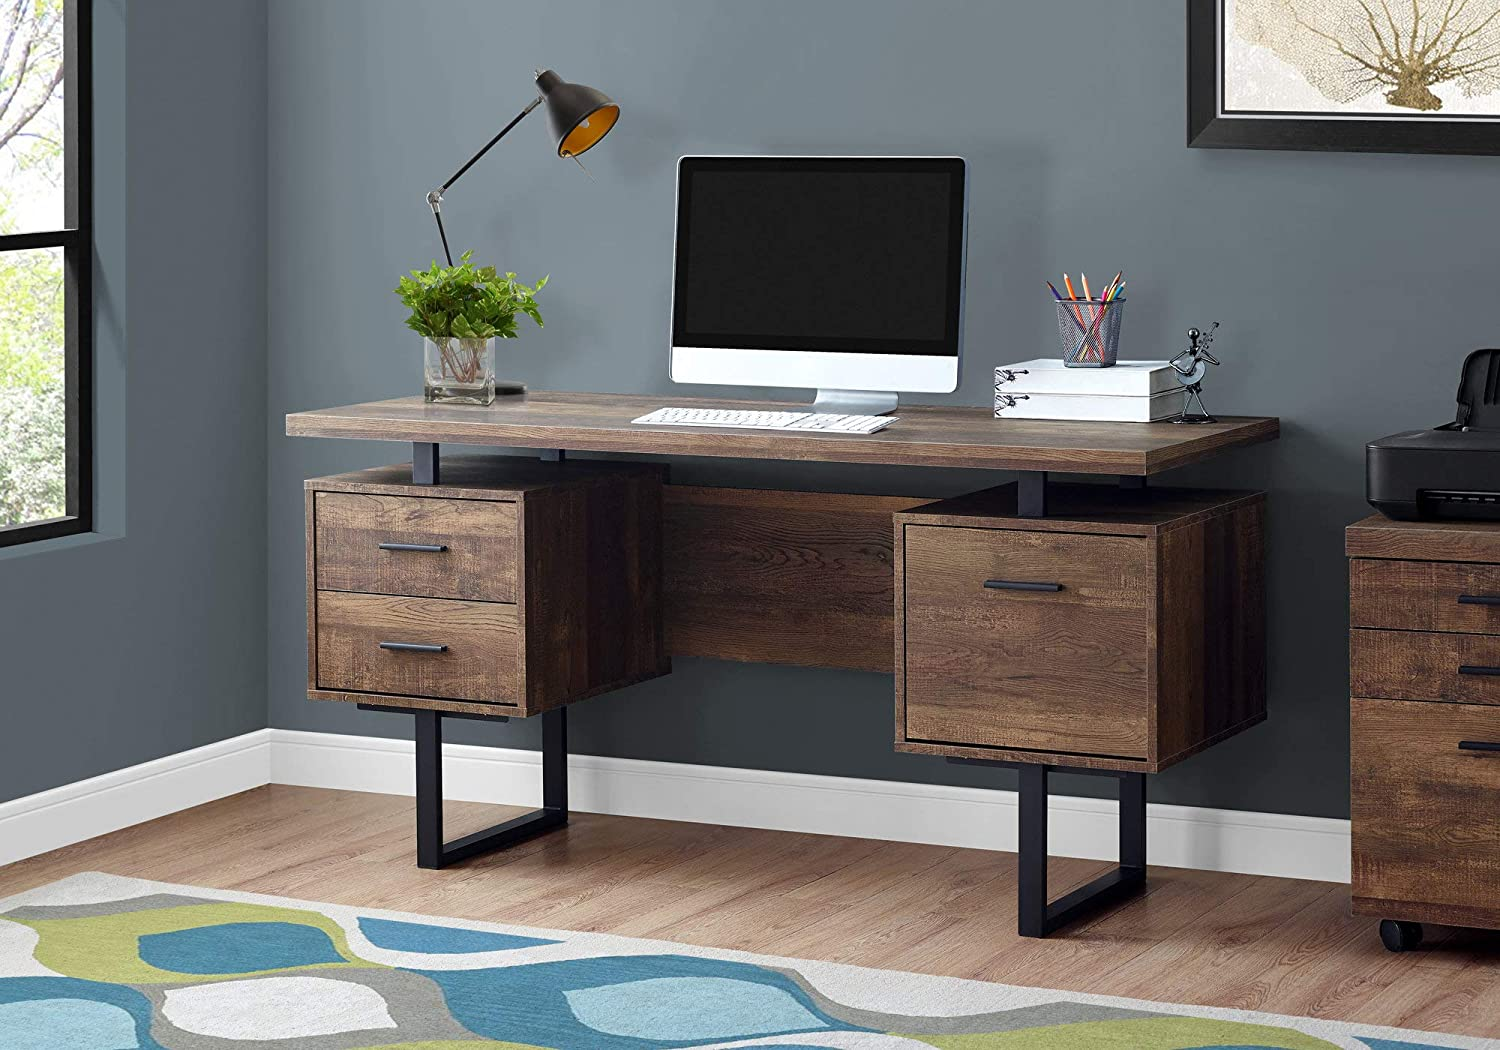 "Monarch Specialties Computer Desk with Drawers - Contemporary Style - Home & Office Computer Desk with Metal Legs - 60"" L (Brown Reclaimed Wood Look)"